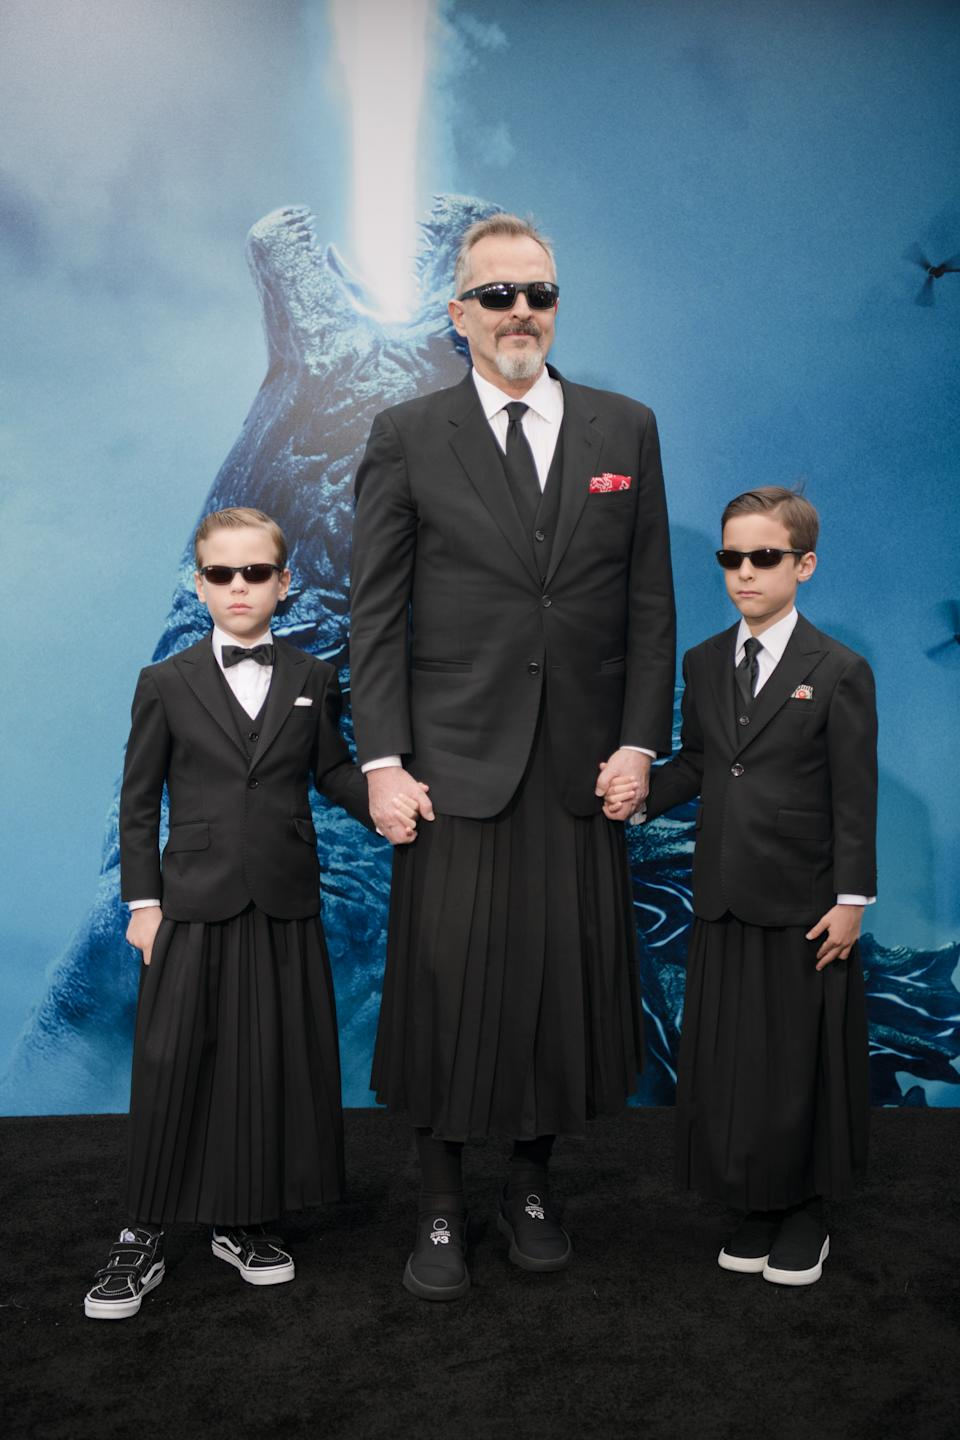 """HOLLYWOOD, CALIFORNIA - MAY 18: Miguel Bose and sons Diego and Tadeo arrive at the premiere Of Warner Bros. Pictures And Legendary Pictures' """"Godzilla: King Of The Monsters"""" at TCL Chinese Theatre on May 18, 2019 in Hollywood, California. (Photo by Morgan Lieberman/WireImage)"""